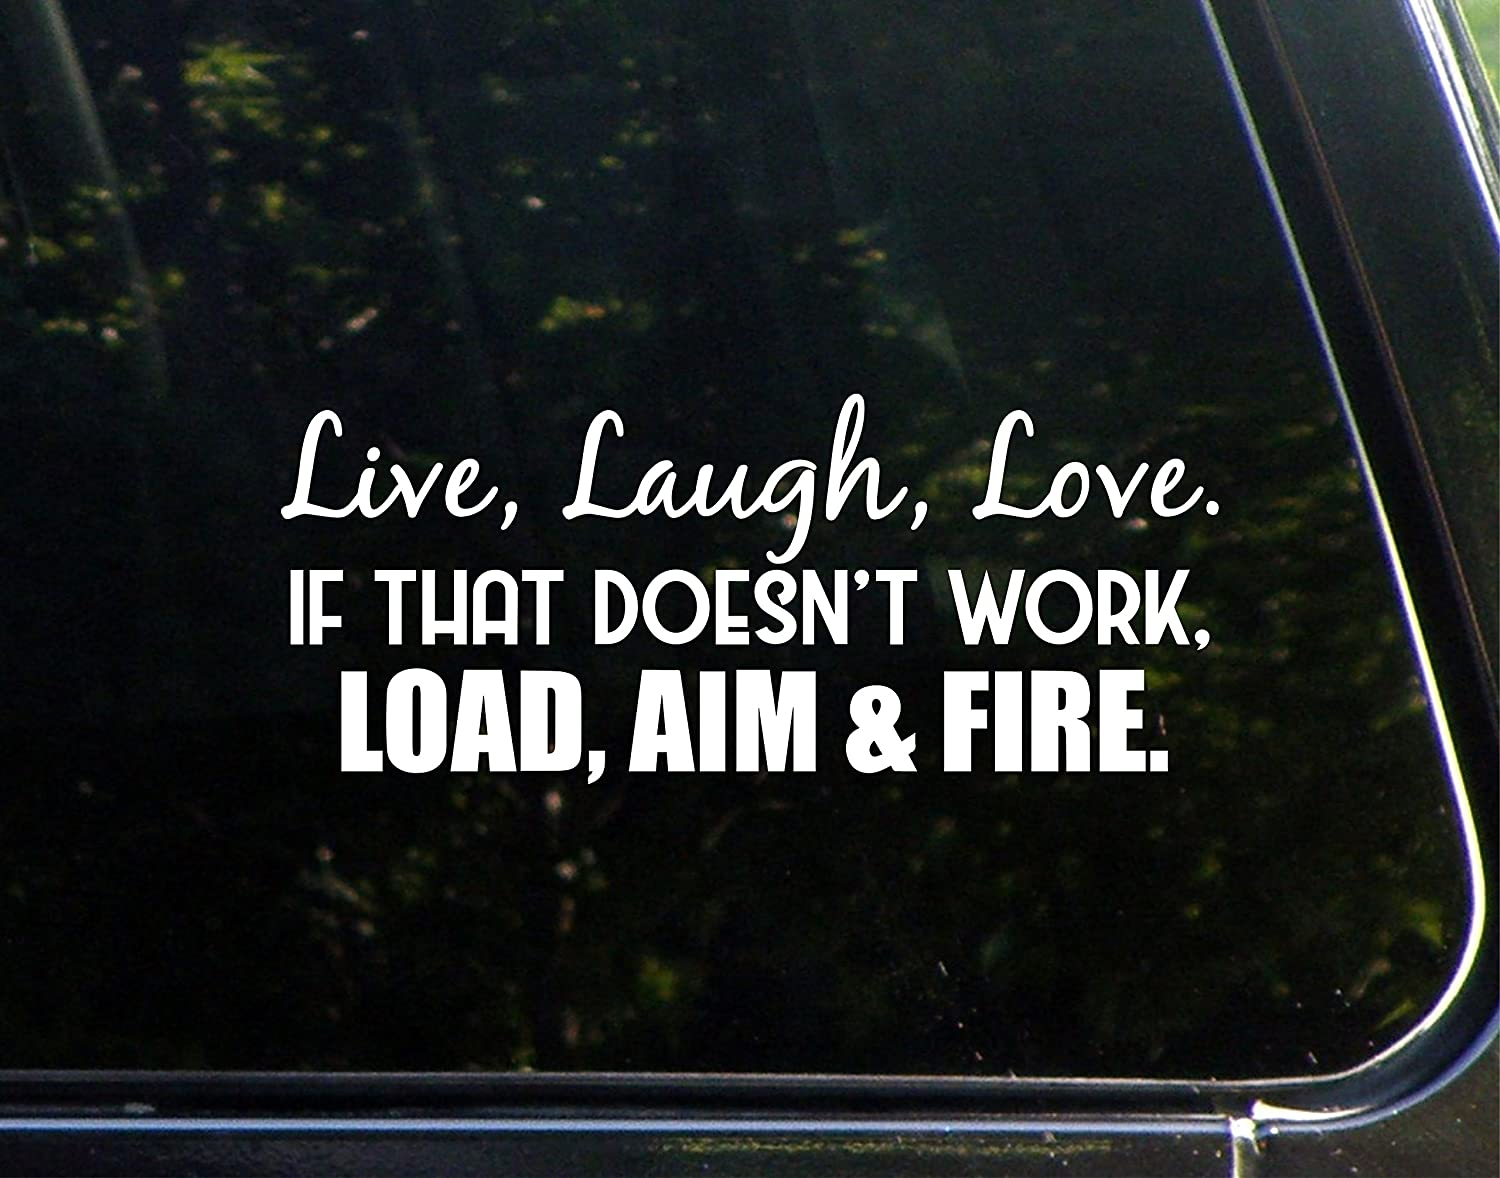 Love Laptops - 8-3//4 x 3-3//4 Cars Live Load Laugh If That Doesnt Work Etc. Vinyl Die Cut Decal// Bumper Sticker For Windows Aim and Fire Trucks